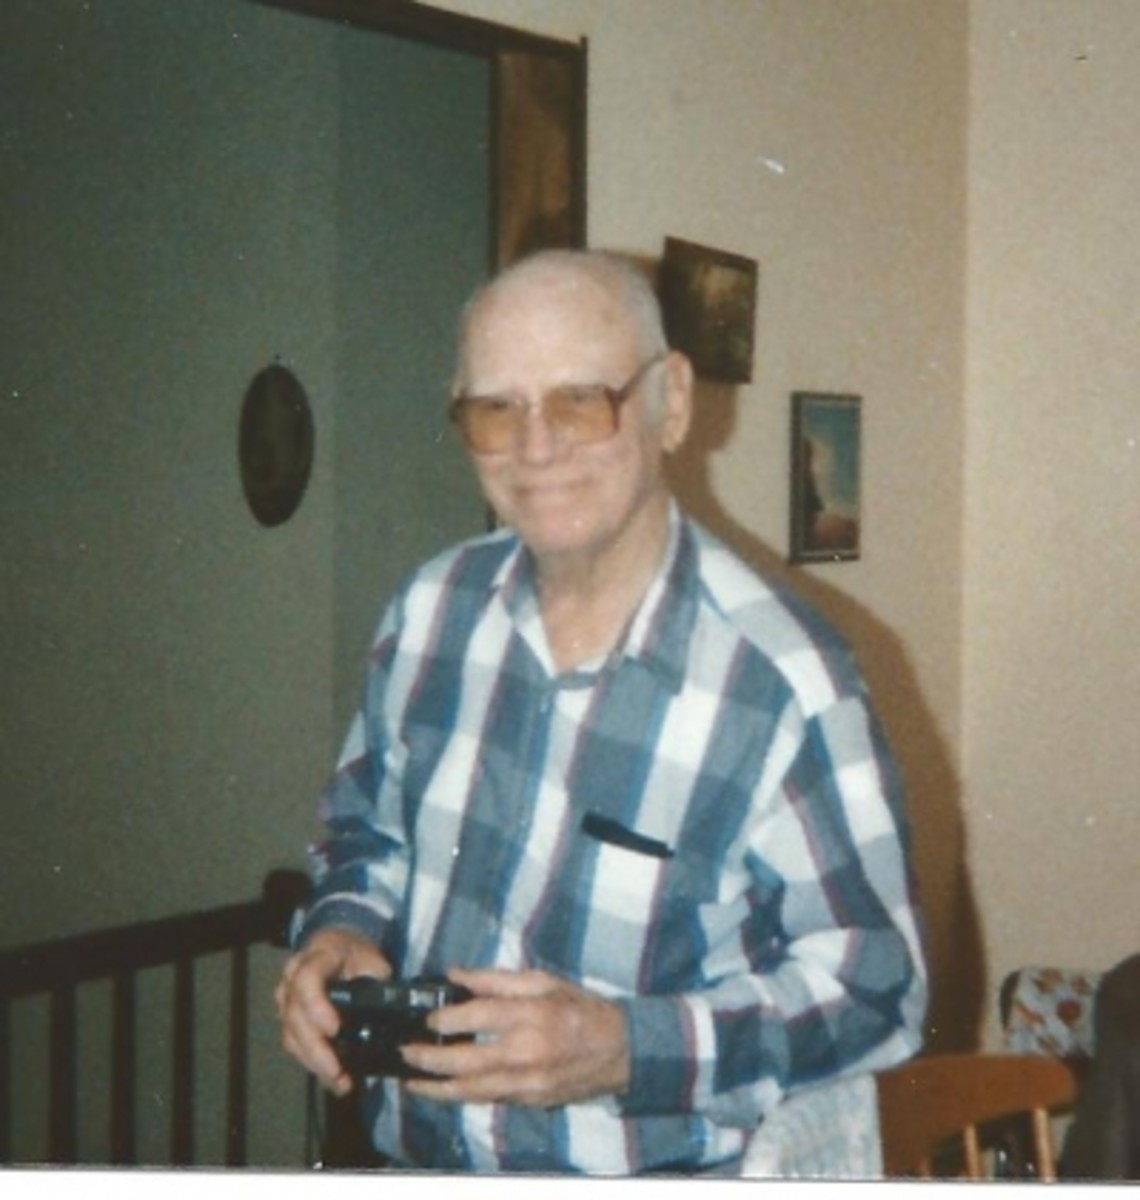 Another photo of my father in 1991